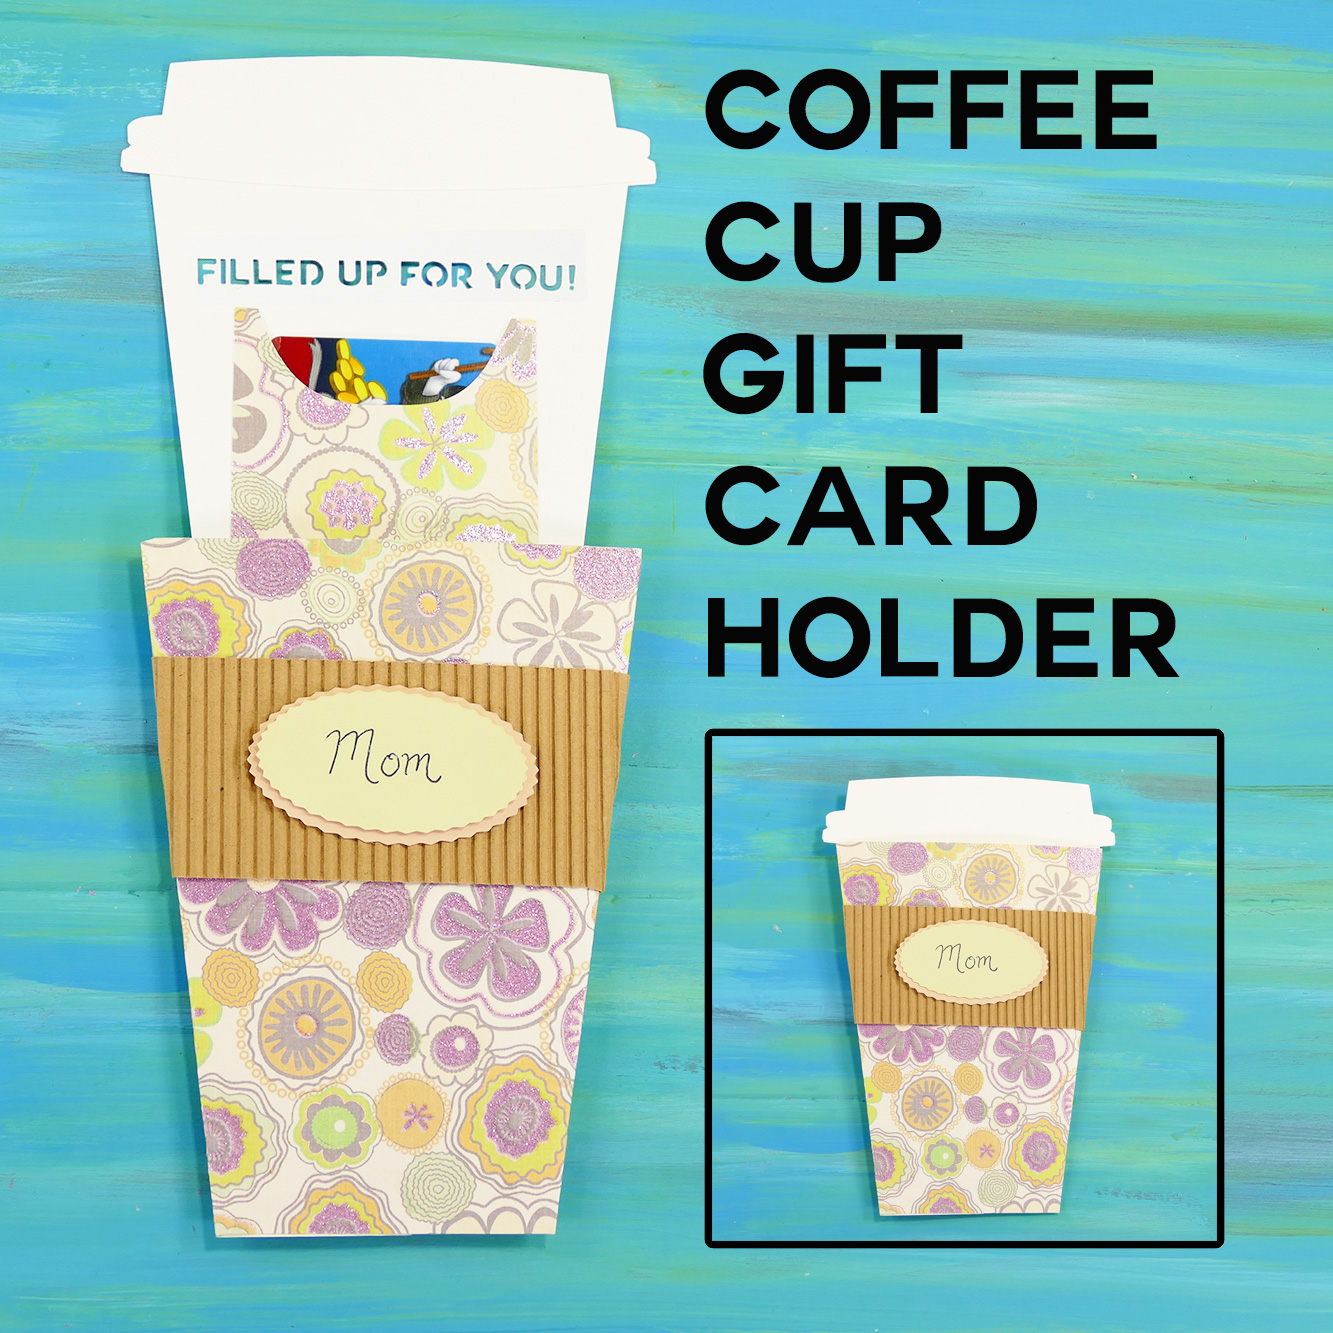 Take out coffee cup gift card holder jennifer maker take out coffee cup gift card holder jennifermaker negle Choice Image